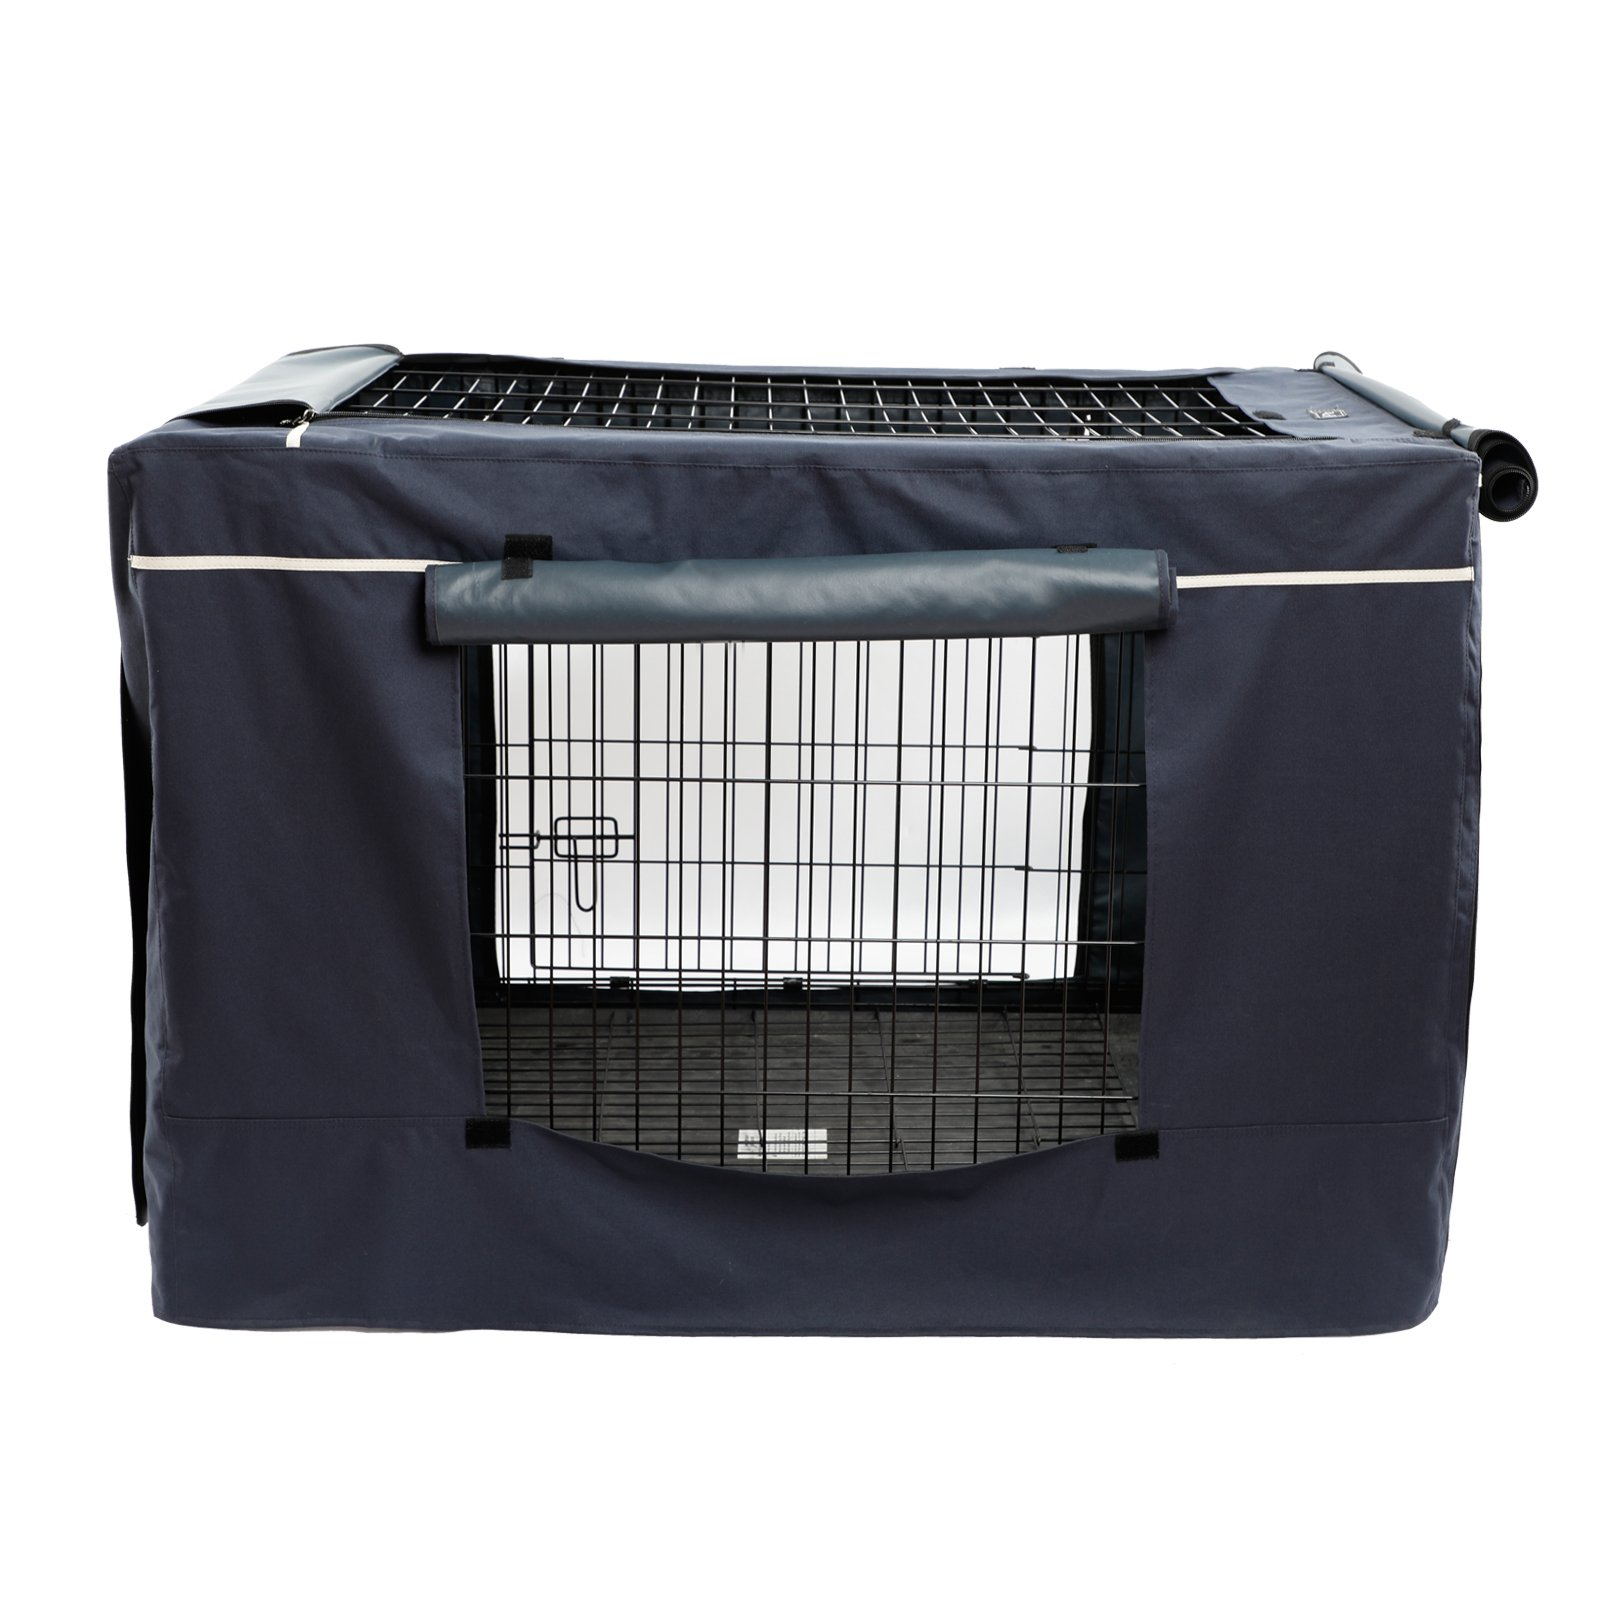 """Petsfit Oxford Cloth Pet Kennel Cover for Wire Dog Crates 42""""L x 28""""W x 30""""H, With Three-Side and Top Windows, Back Zipper, Dark Blue by Petsfit (Image #5)"""